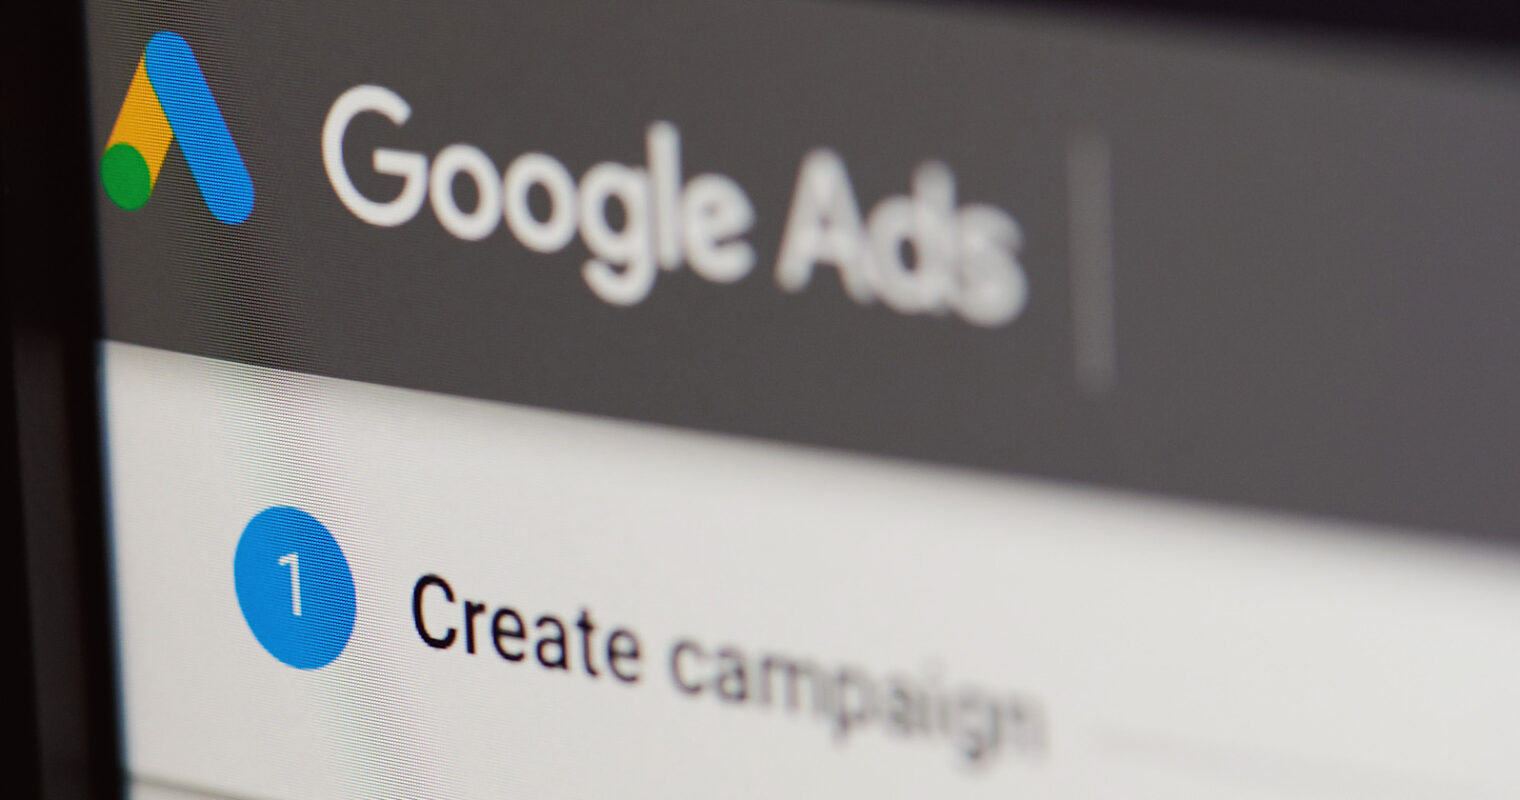 Google Ads Advertisers Can Now Capture Leads From YouTube